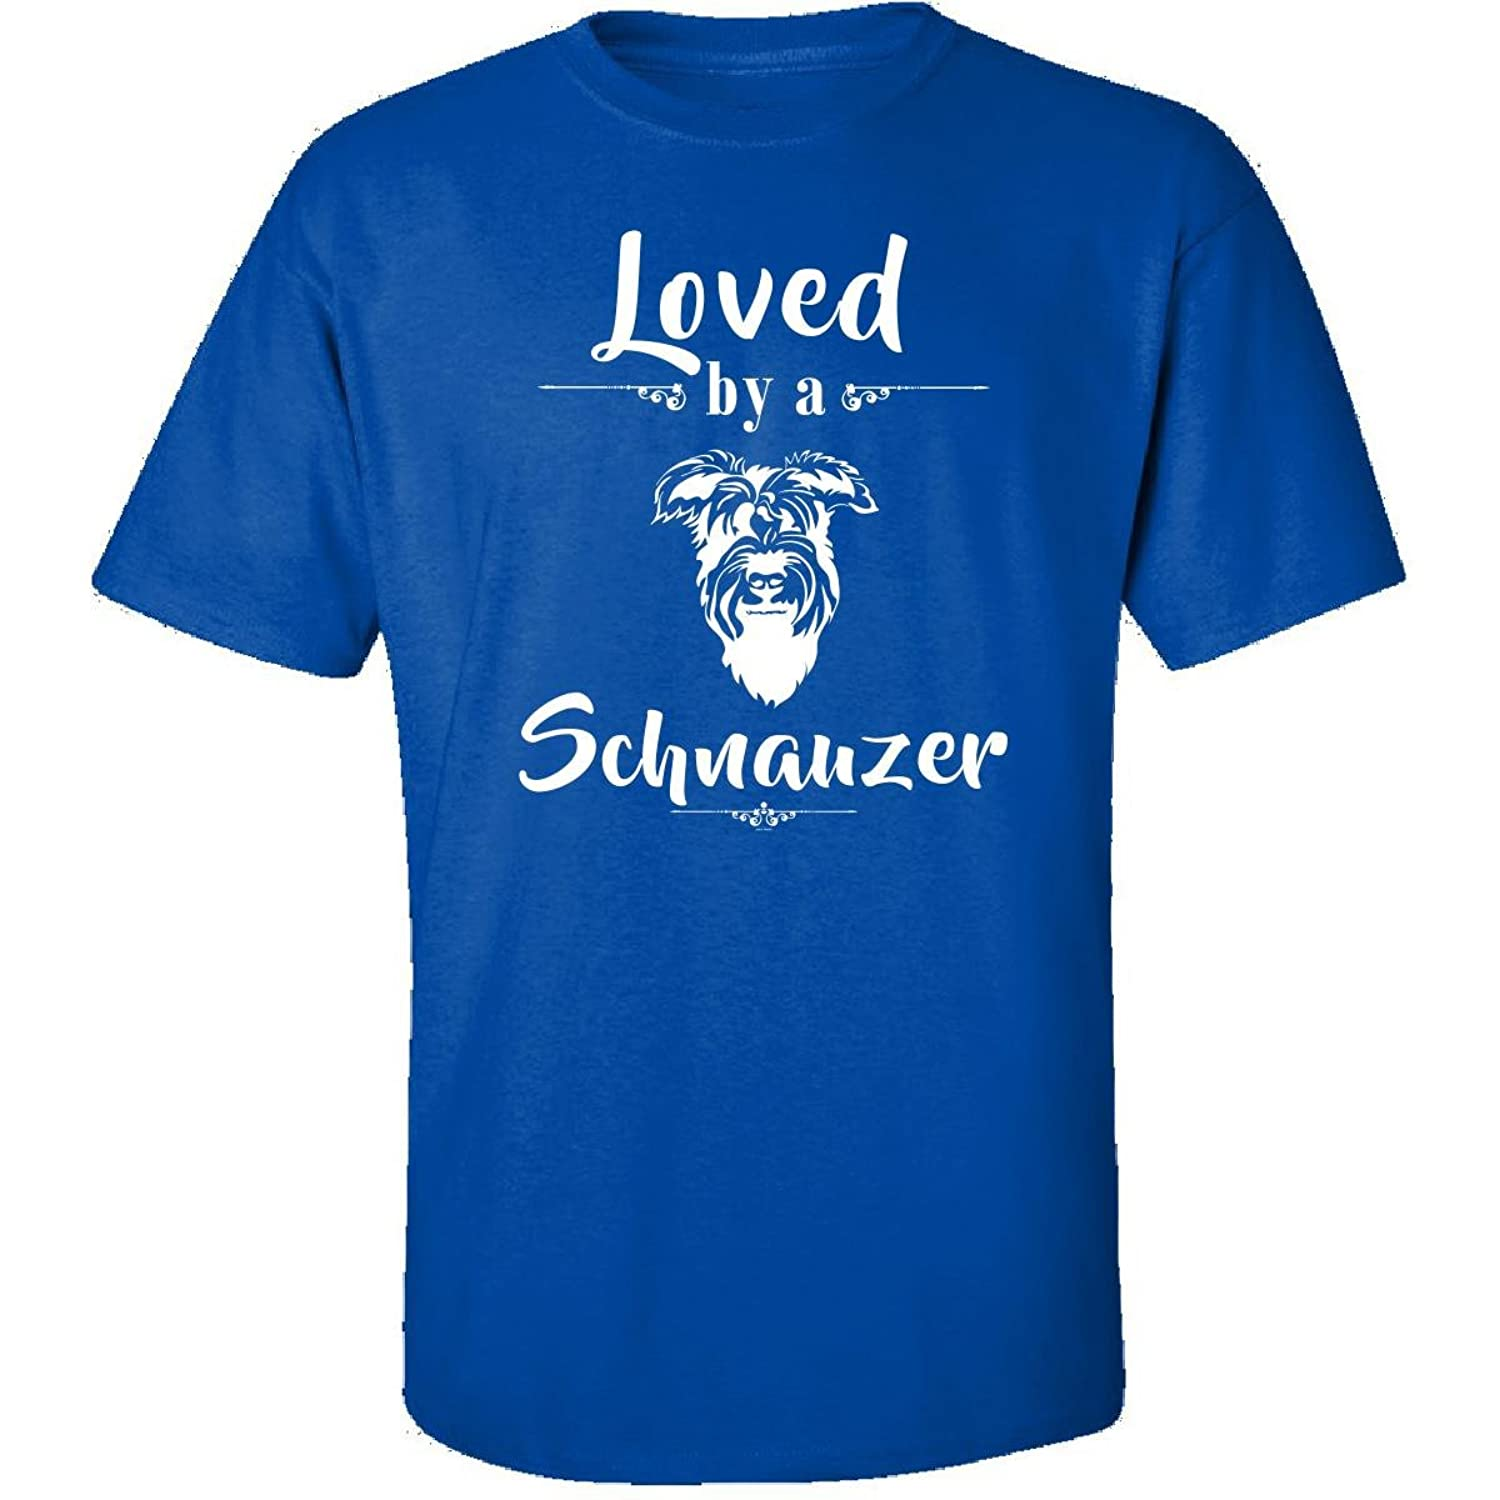 Gifts For Schnauzer Lovers Or Owners Loved By A Dog - Adult Shirt